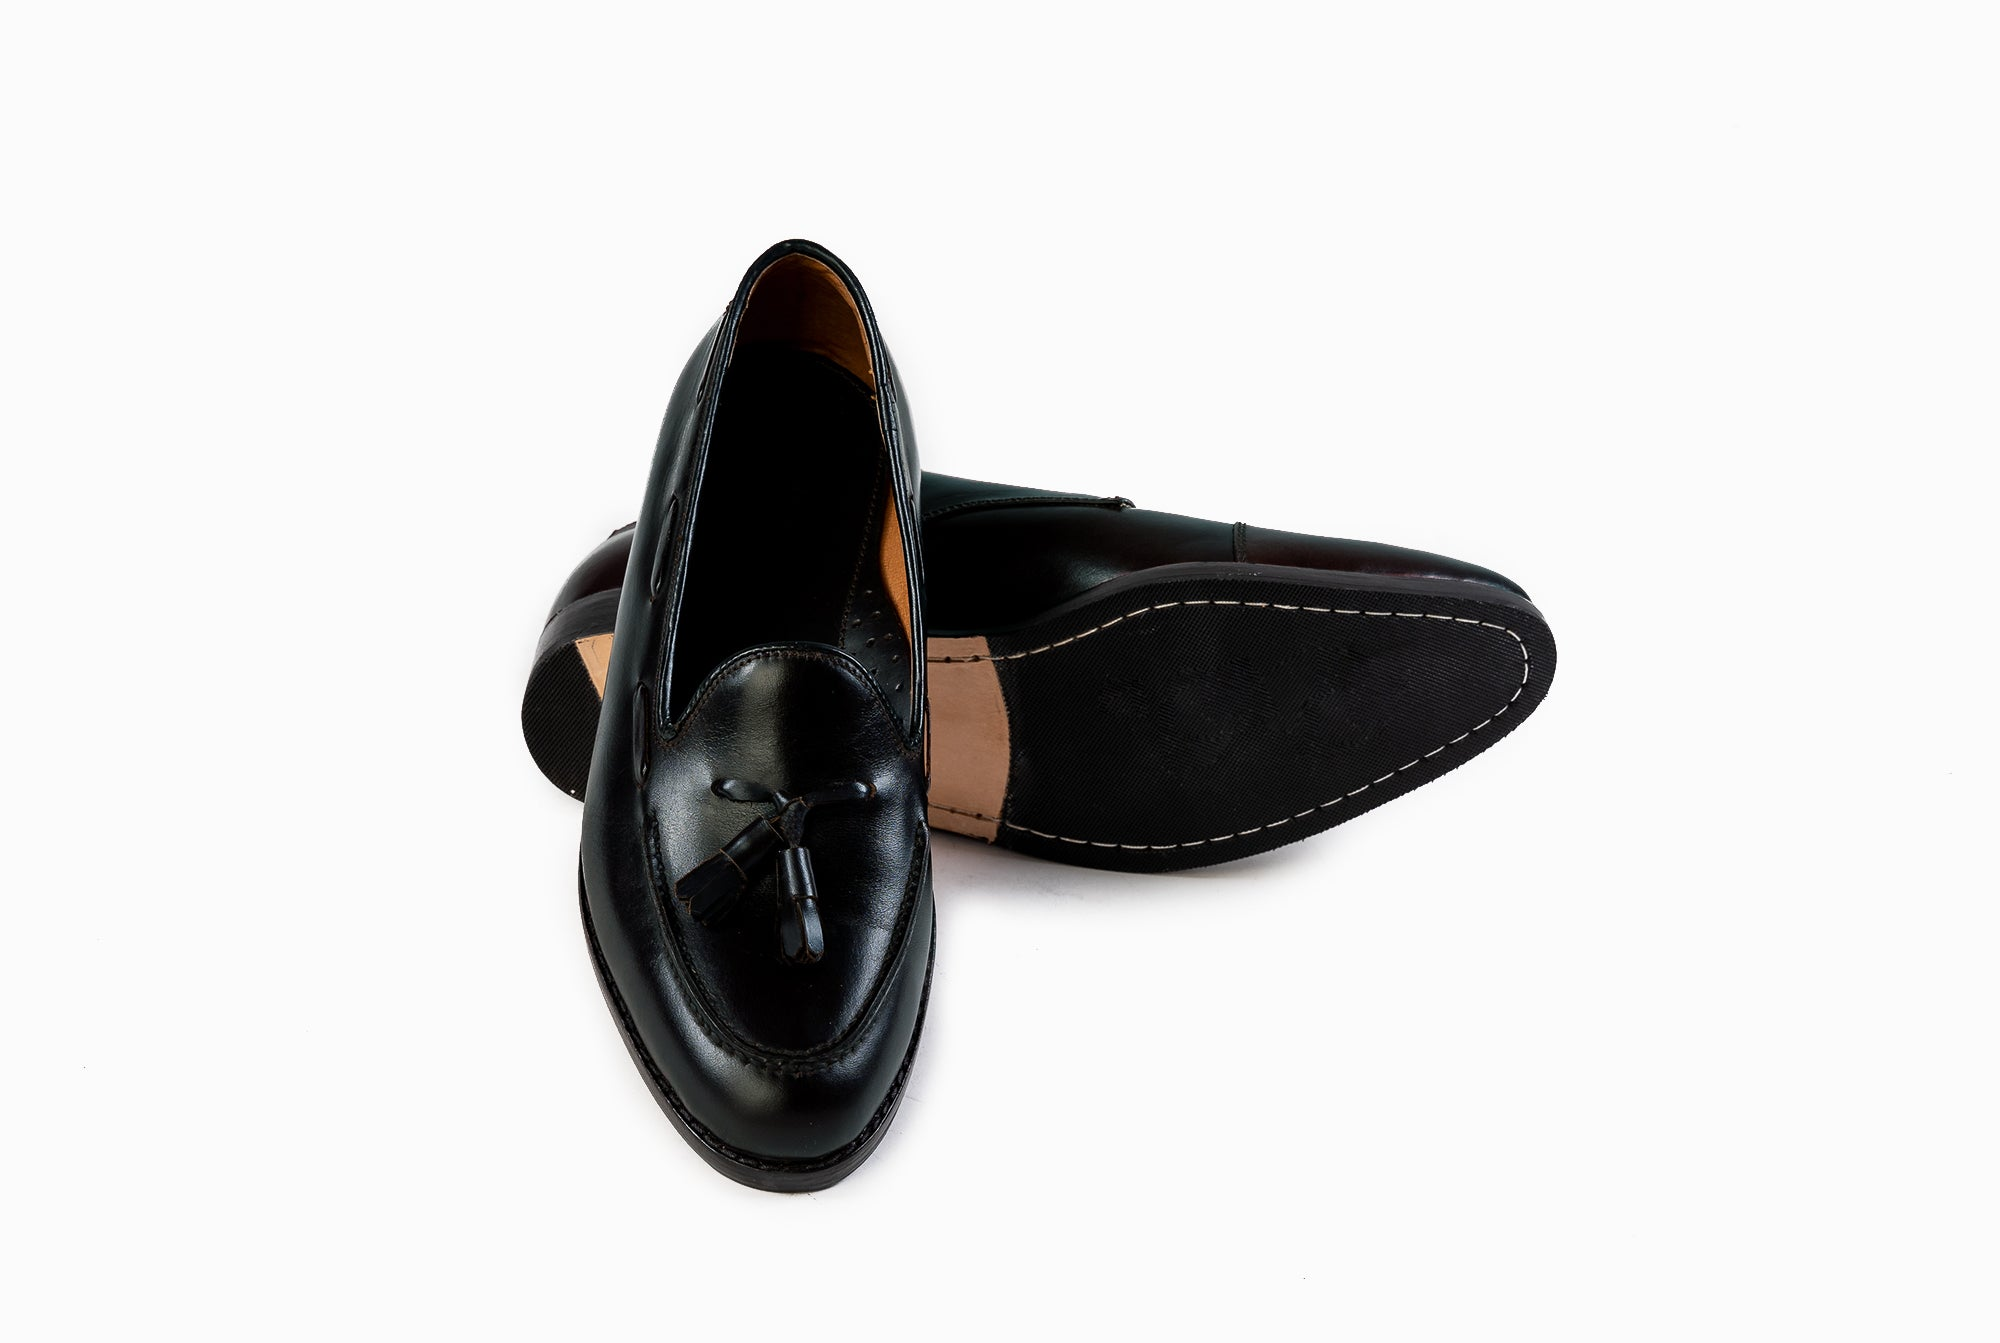 The Grand Tassel Loafer - Black Noir - Marquina Shoemaker